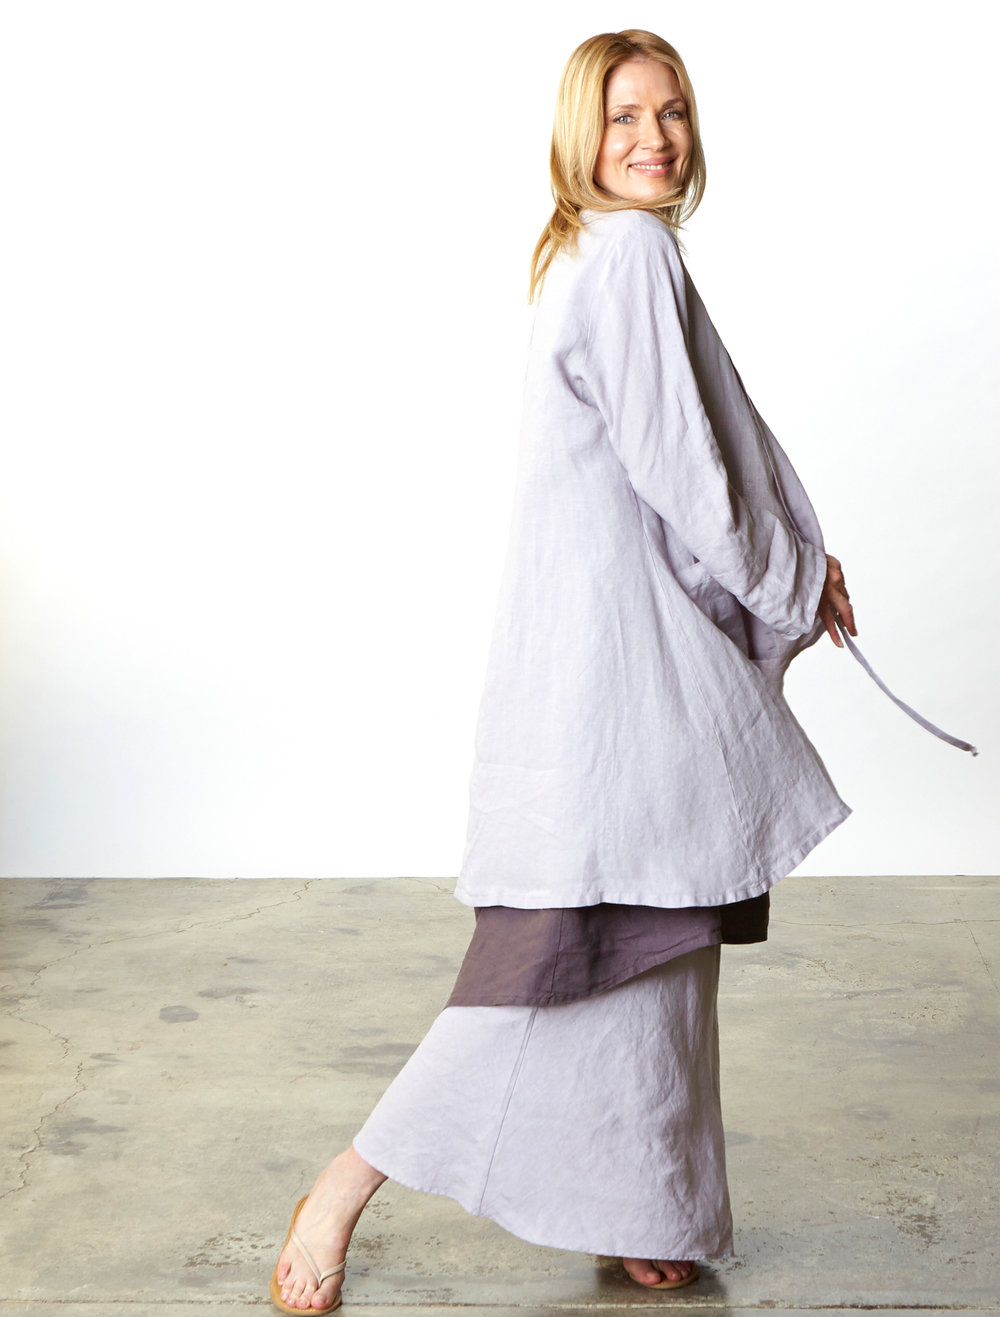 Andrea Jacket, Long Bias Skirt in Taro, Louie Dress in Earl Light Linen